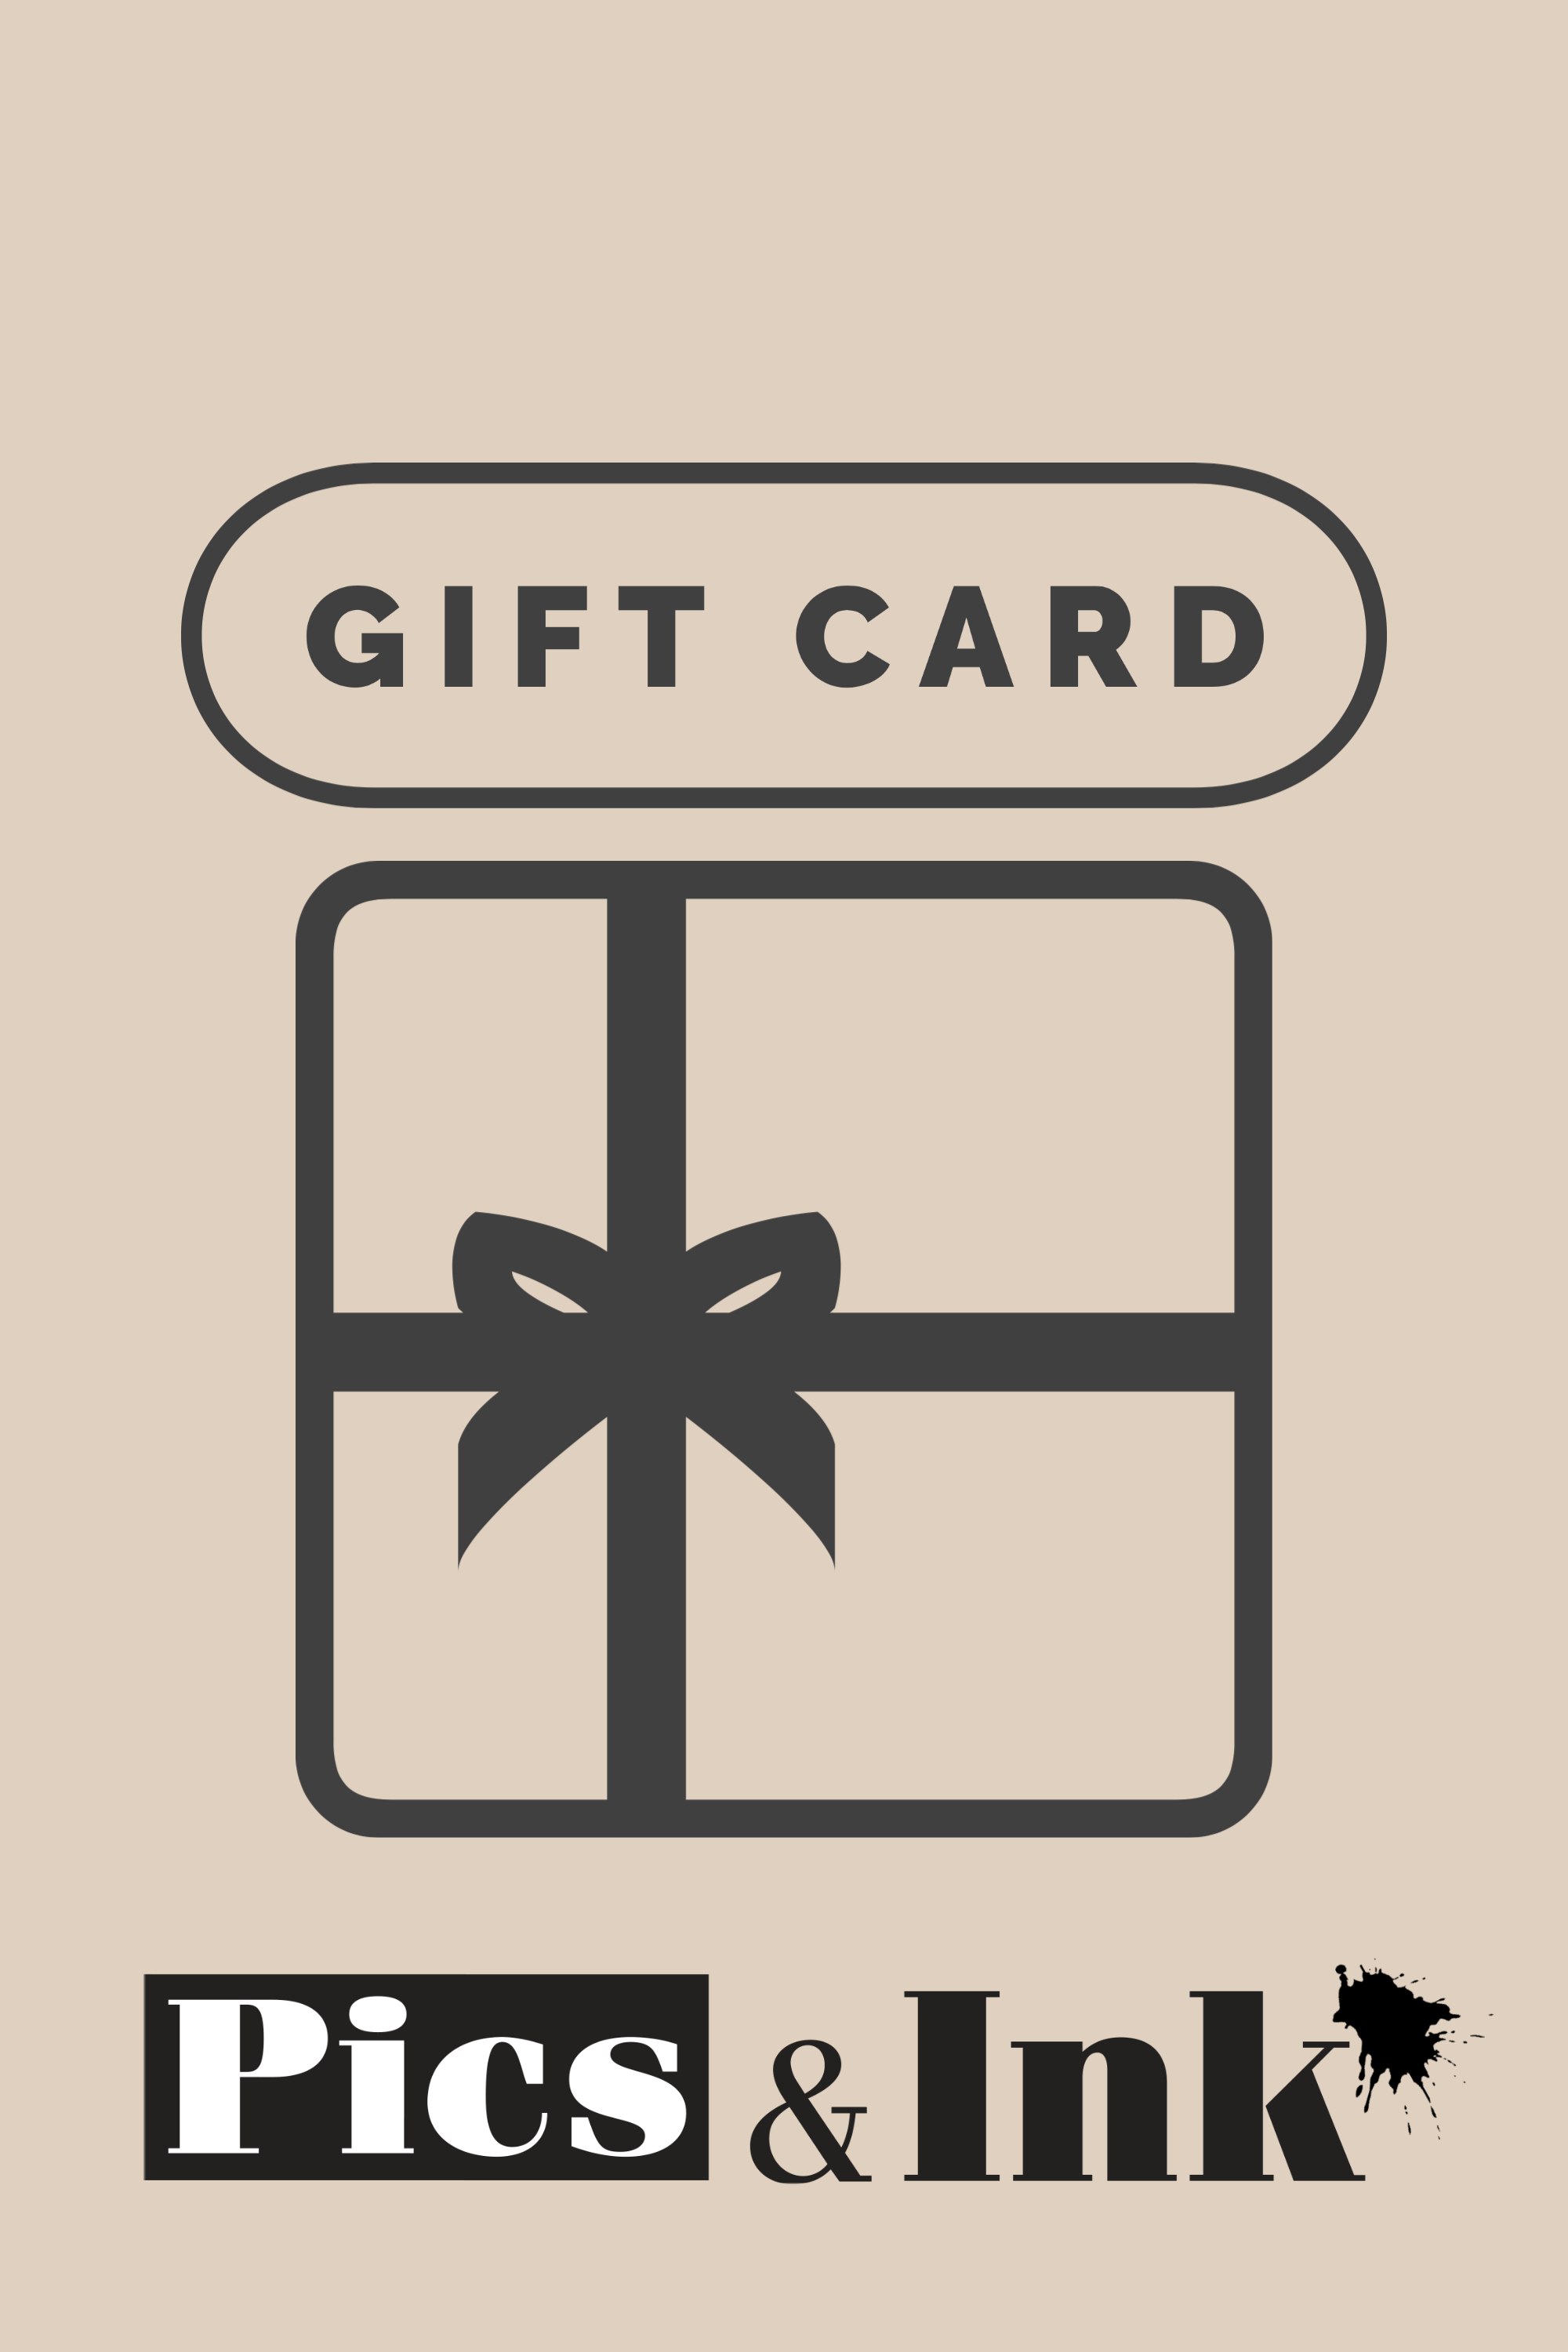 Pics & Ink Gift Card